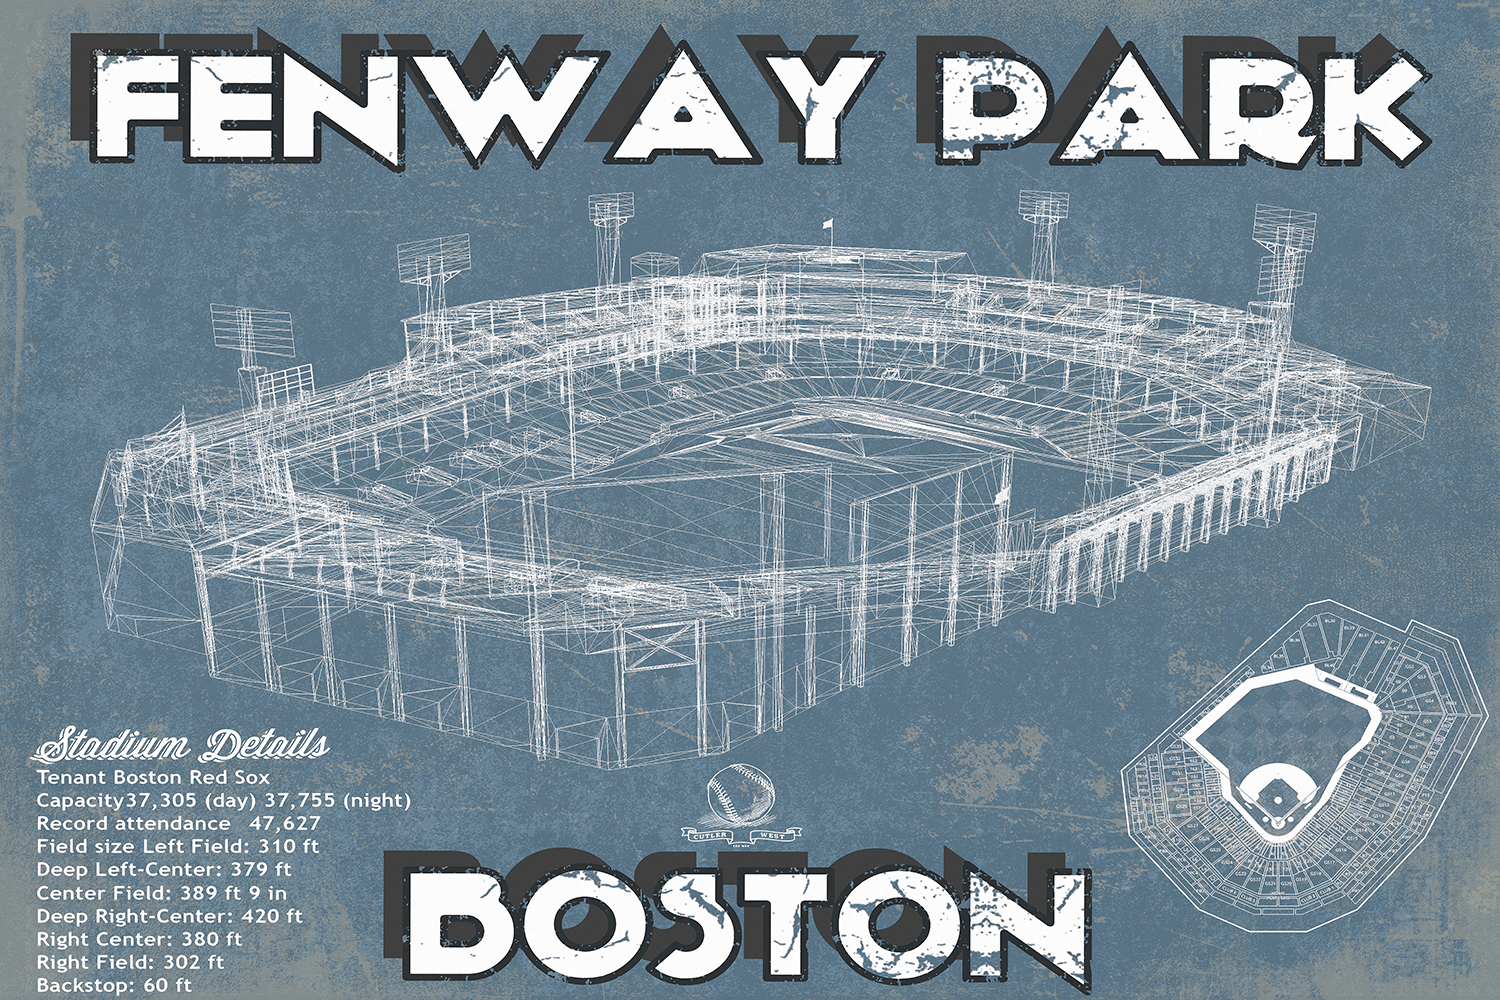 Blueprint of Fenway Park in Boston with white drawing and stadium details on the bottom